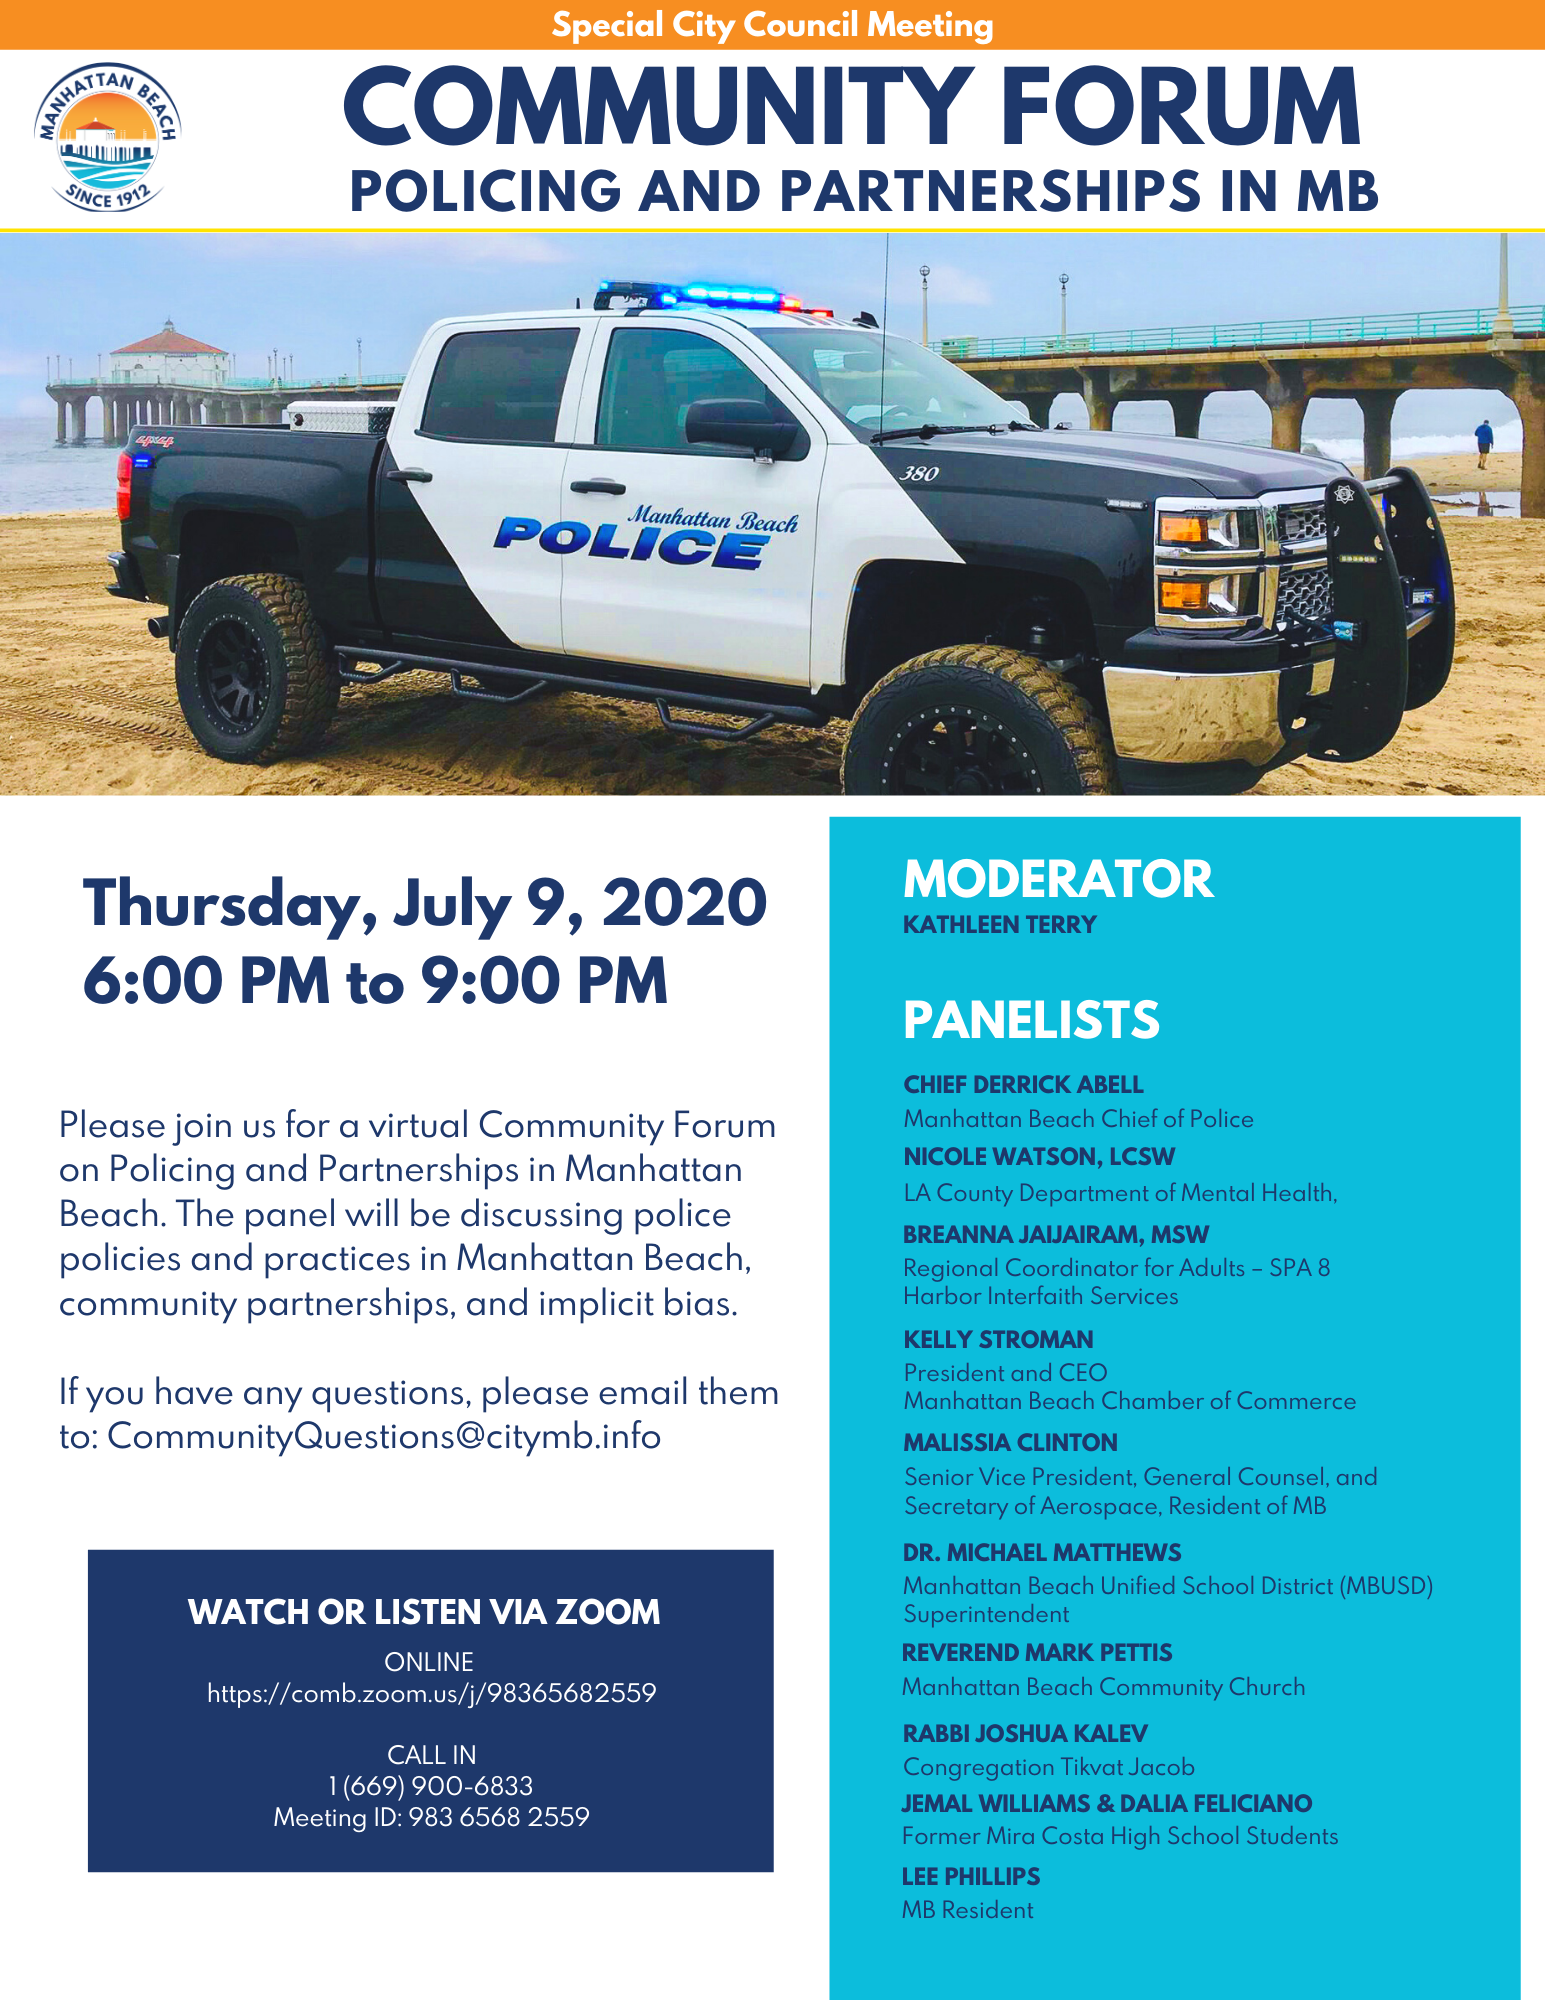 Community Forum in Policing and Partnerships in Manhattan Beach